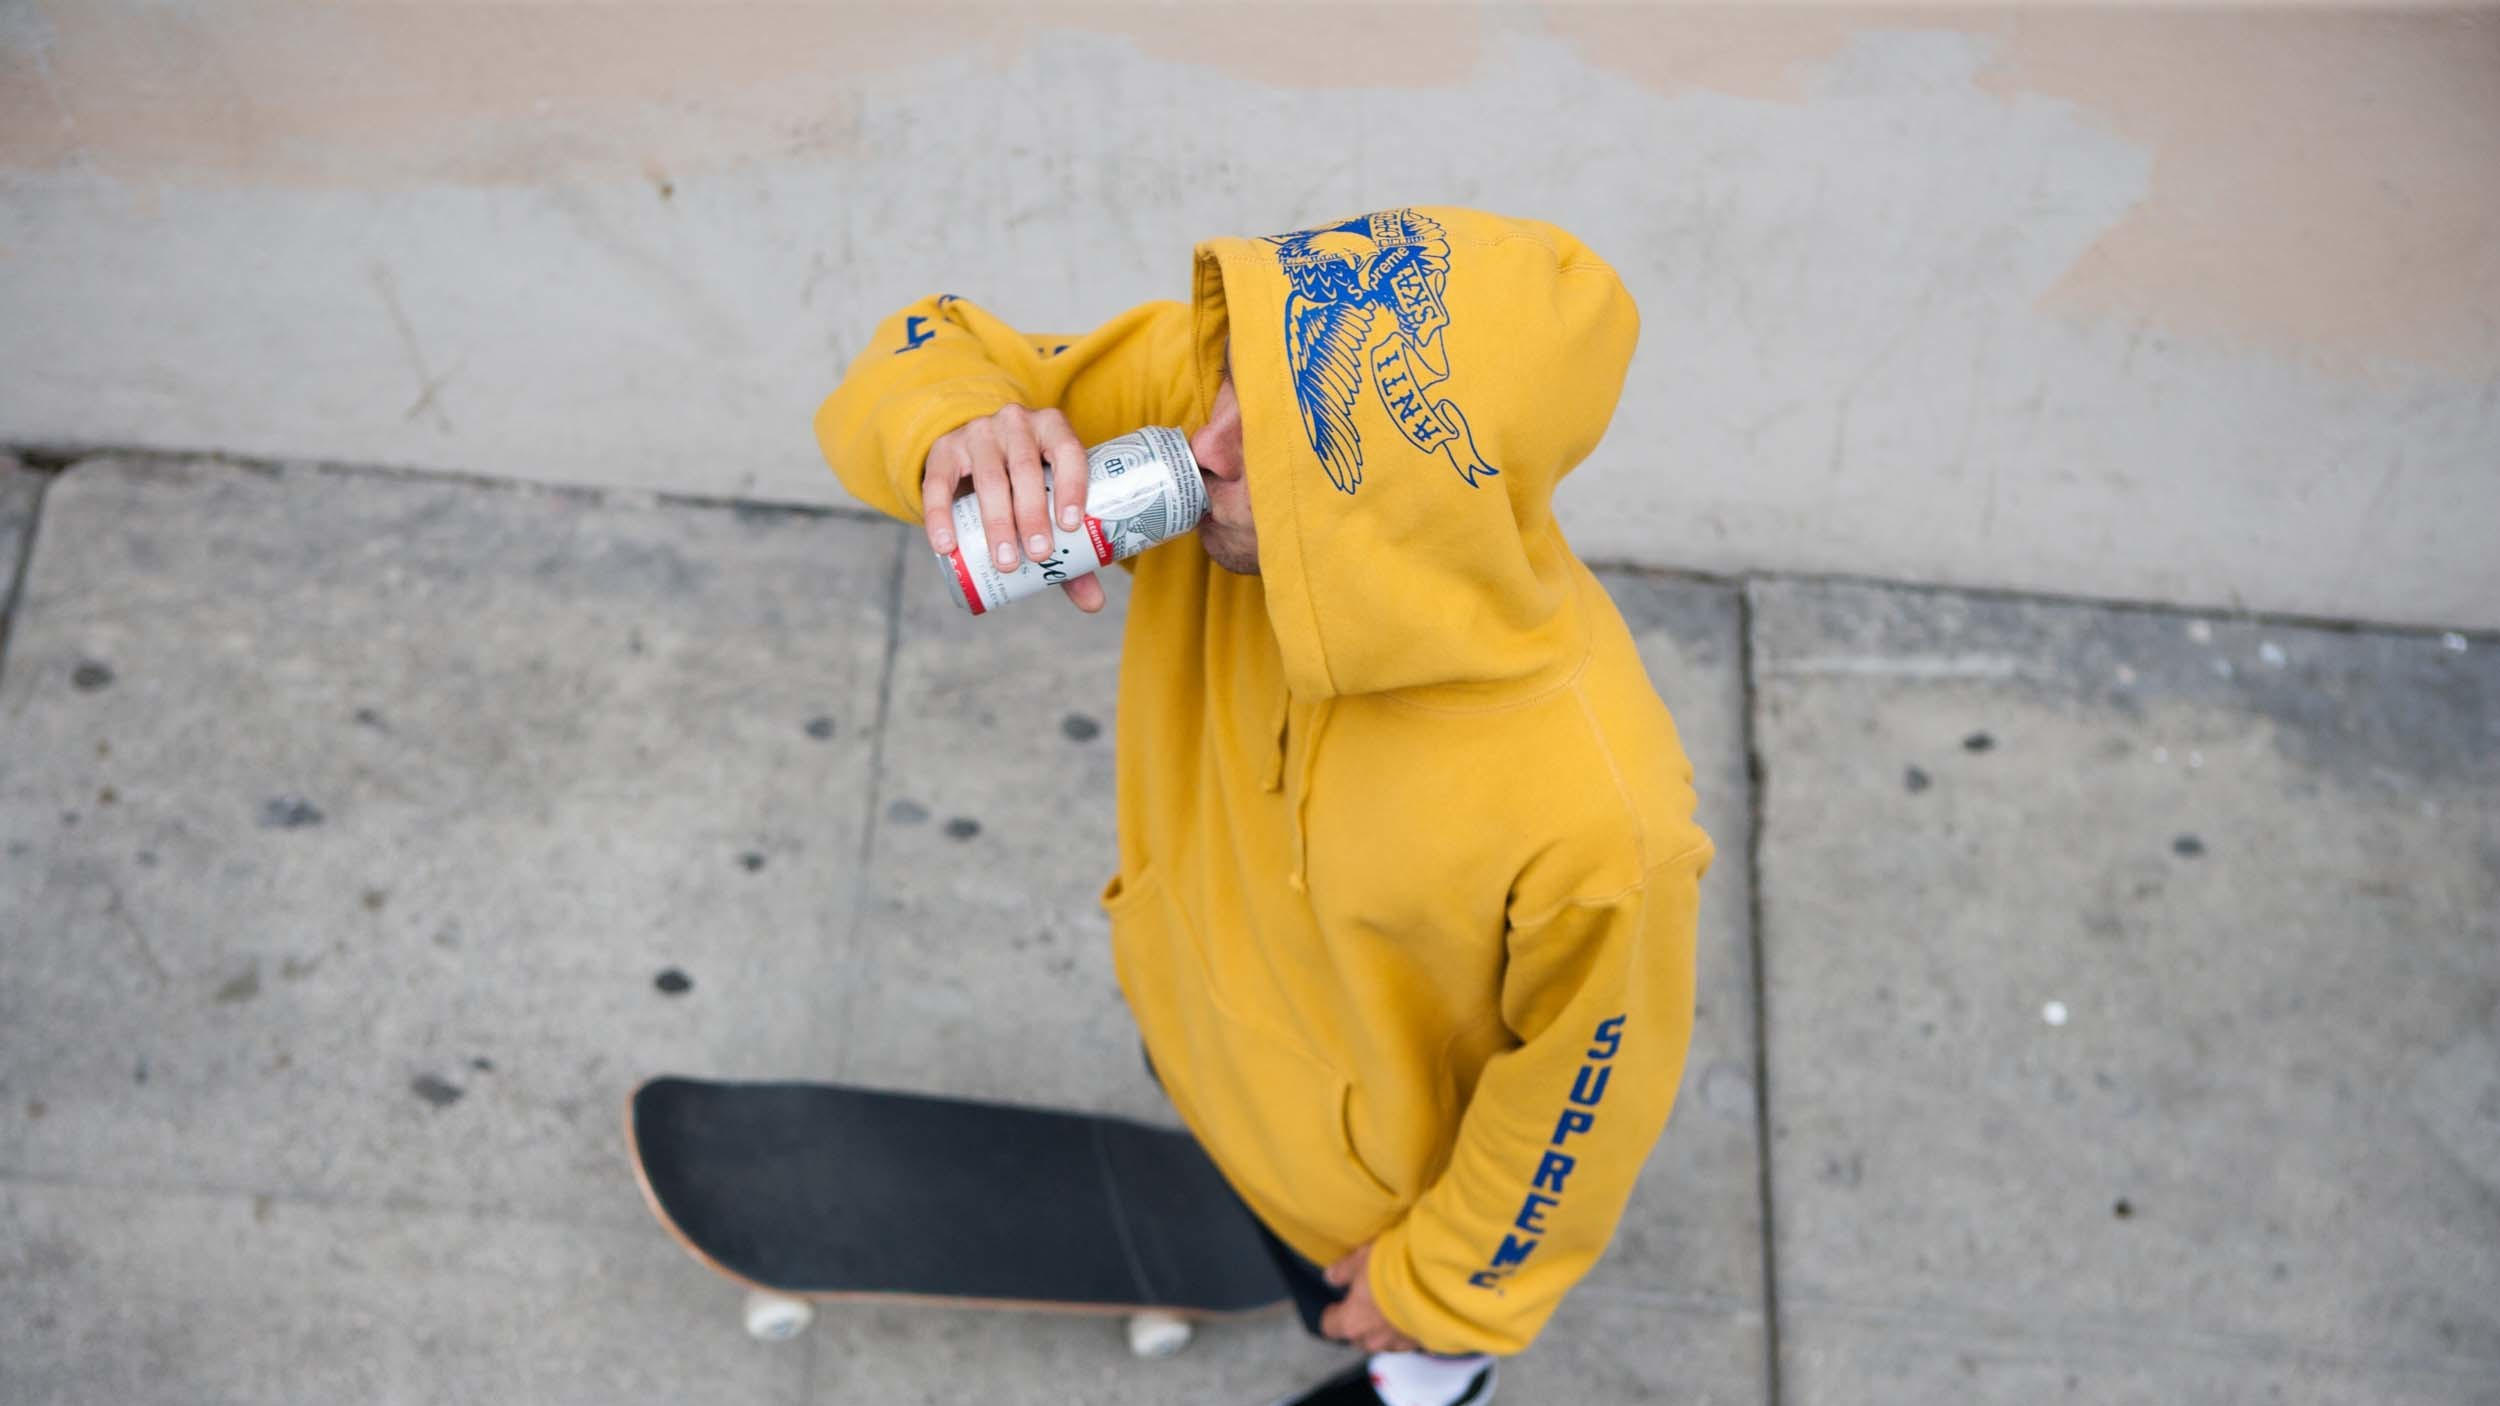 supreme team up with cult skate label anti hero